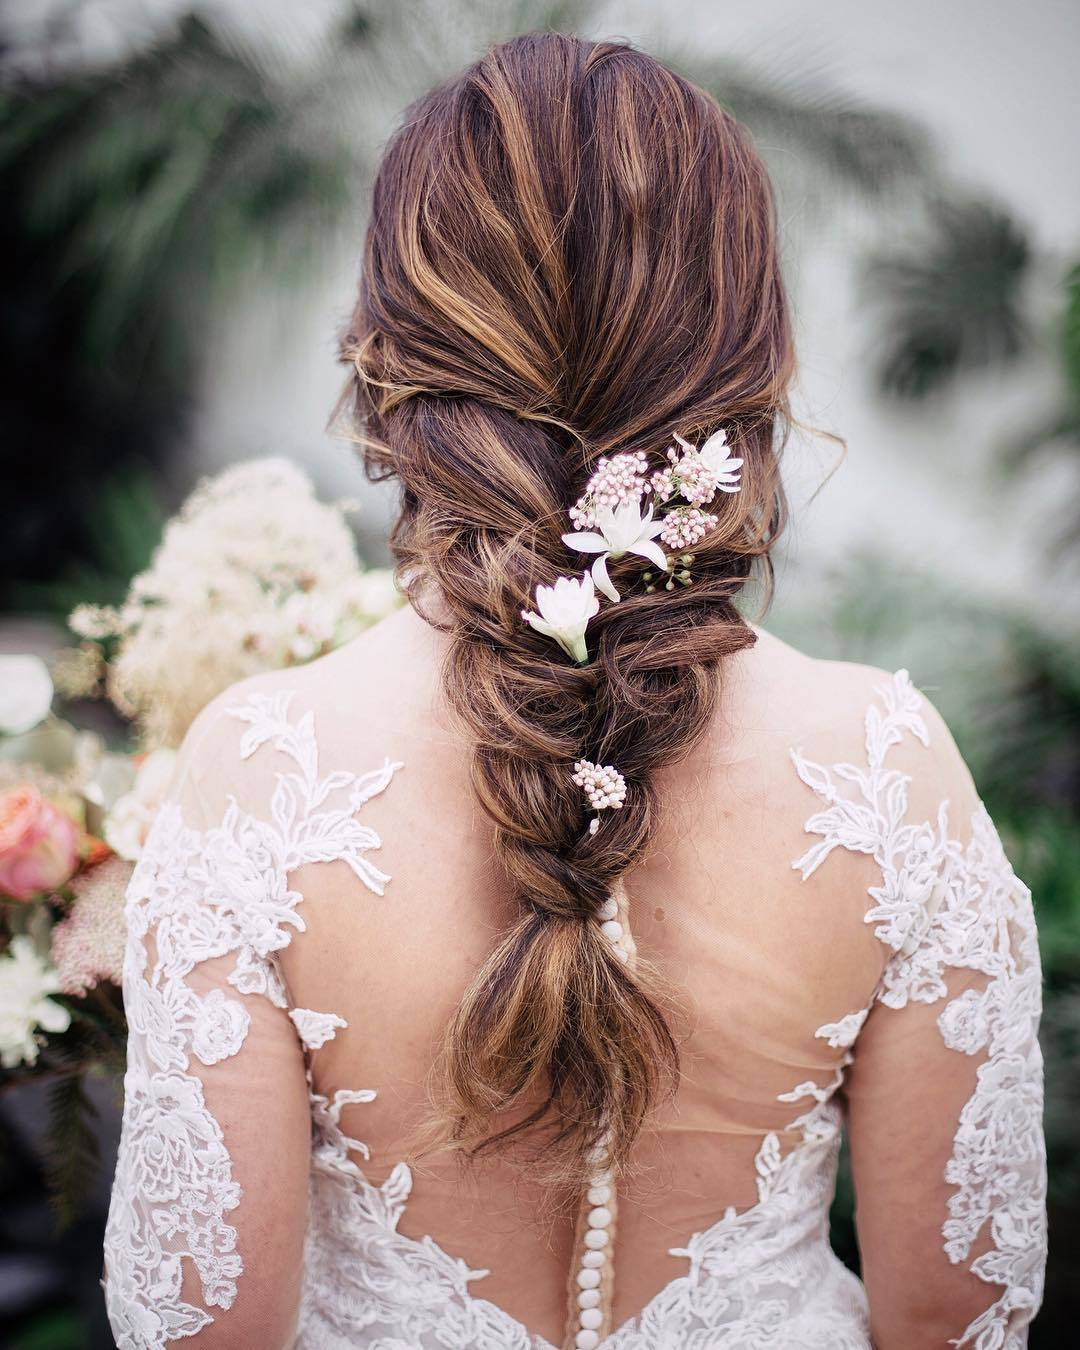 Wedding Hairstyles: 47 Stunning Wedding Hairstyles All Brides Will Love